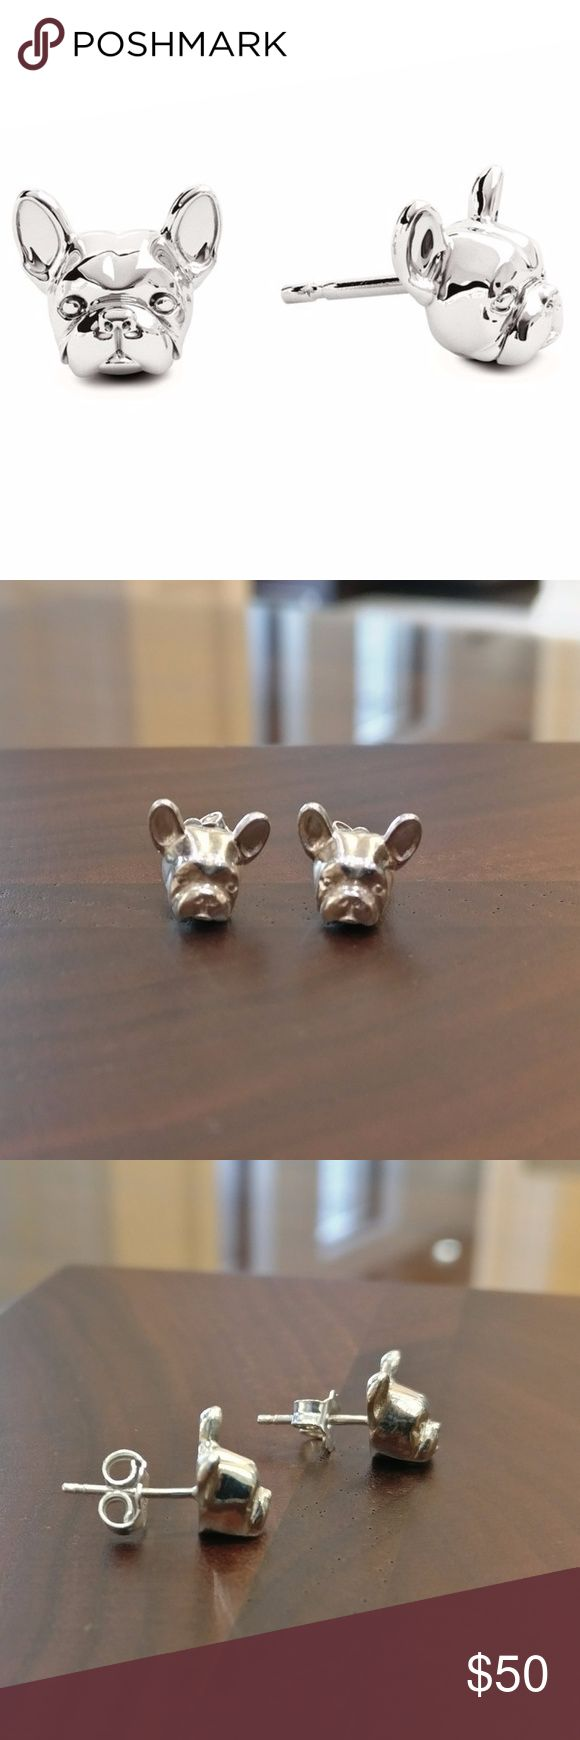 French Bulldog Stud Earrings Sterling Silver PRICE IS FIRM  Handmade by Dog Fever in Italy.  Sterling silver carved to look like a French Bulldog.  Stud earrings with friction posts and backs. Picture next to a ruler for scale. Pristine condition.  PRICE IS FIRM Dog Fever Jewelry Earrings